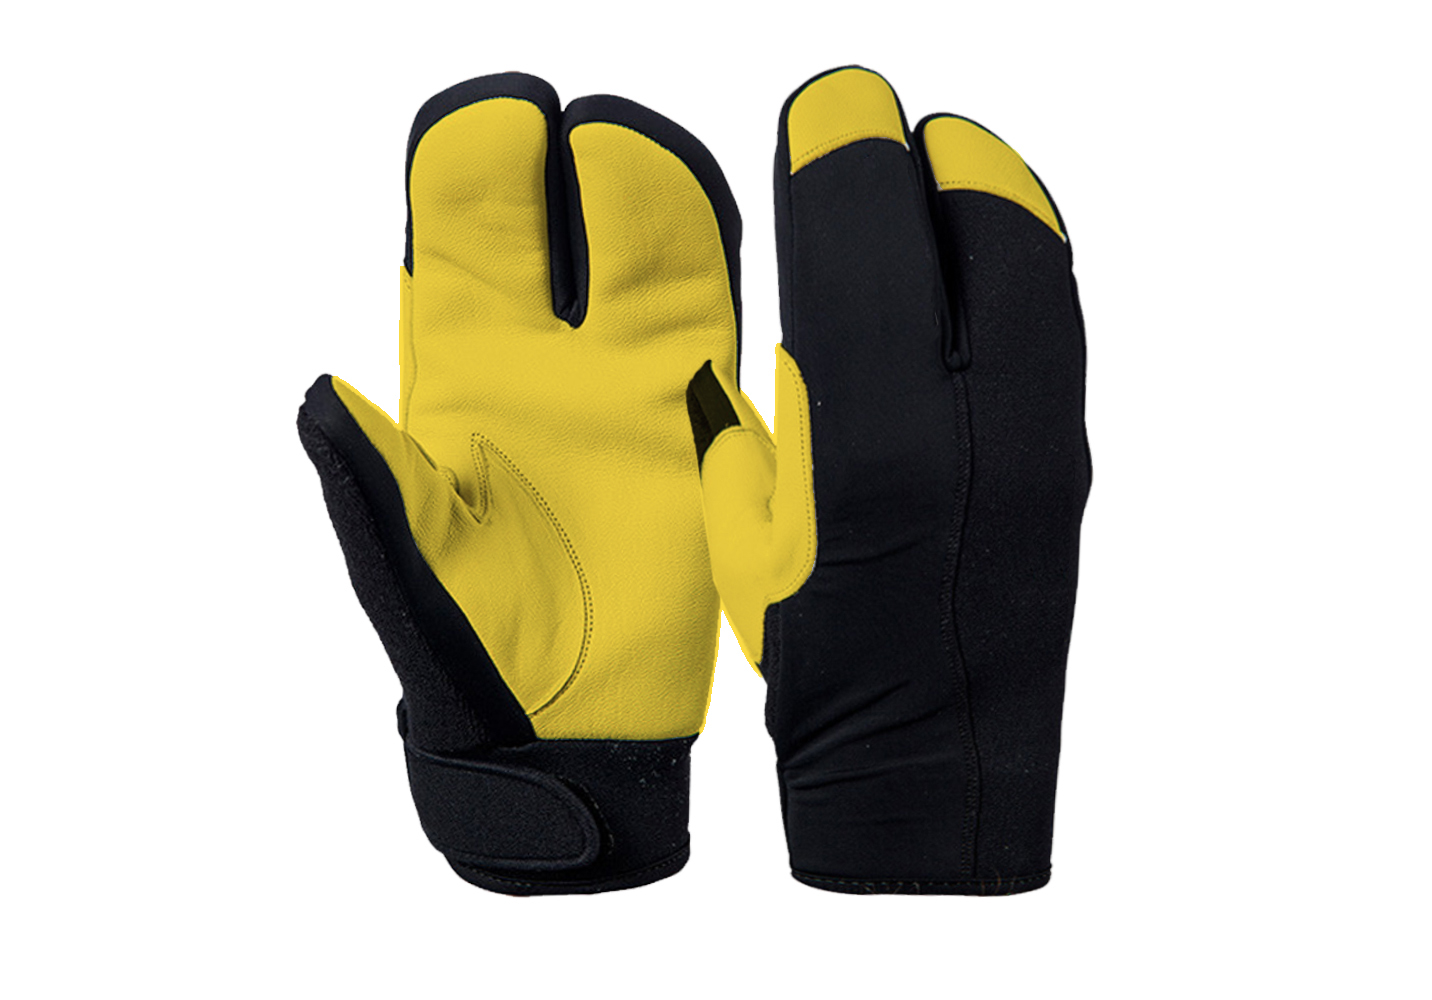 Goat Leather Micro-Fleece Glove/IWG-021